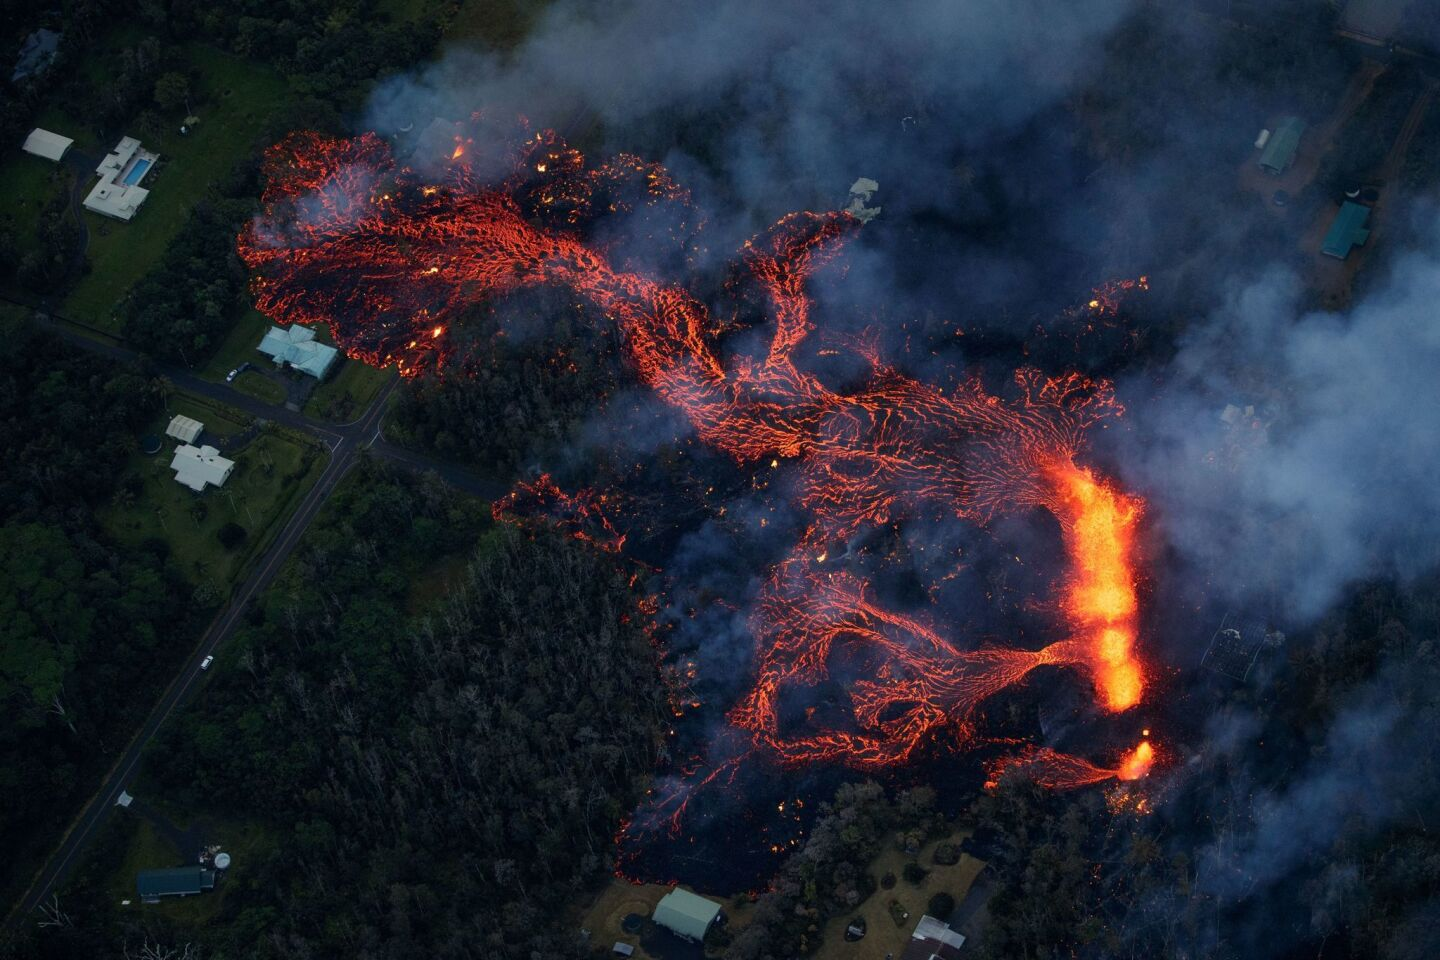 Volcanic activity continues along Kilauea's east rift zone, as a robust fissure eruption in Leilani Estates sends a massive flow into the subdivision, consuming all in its path, near Pahoa, Hawaii on May 6, 2018.